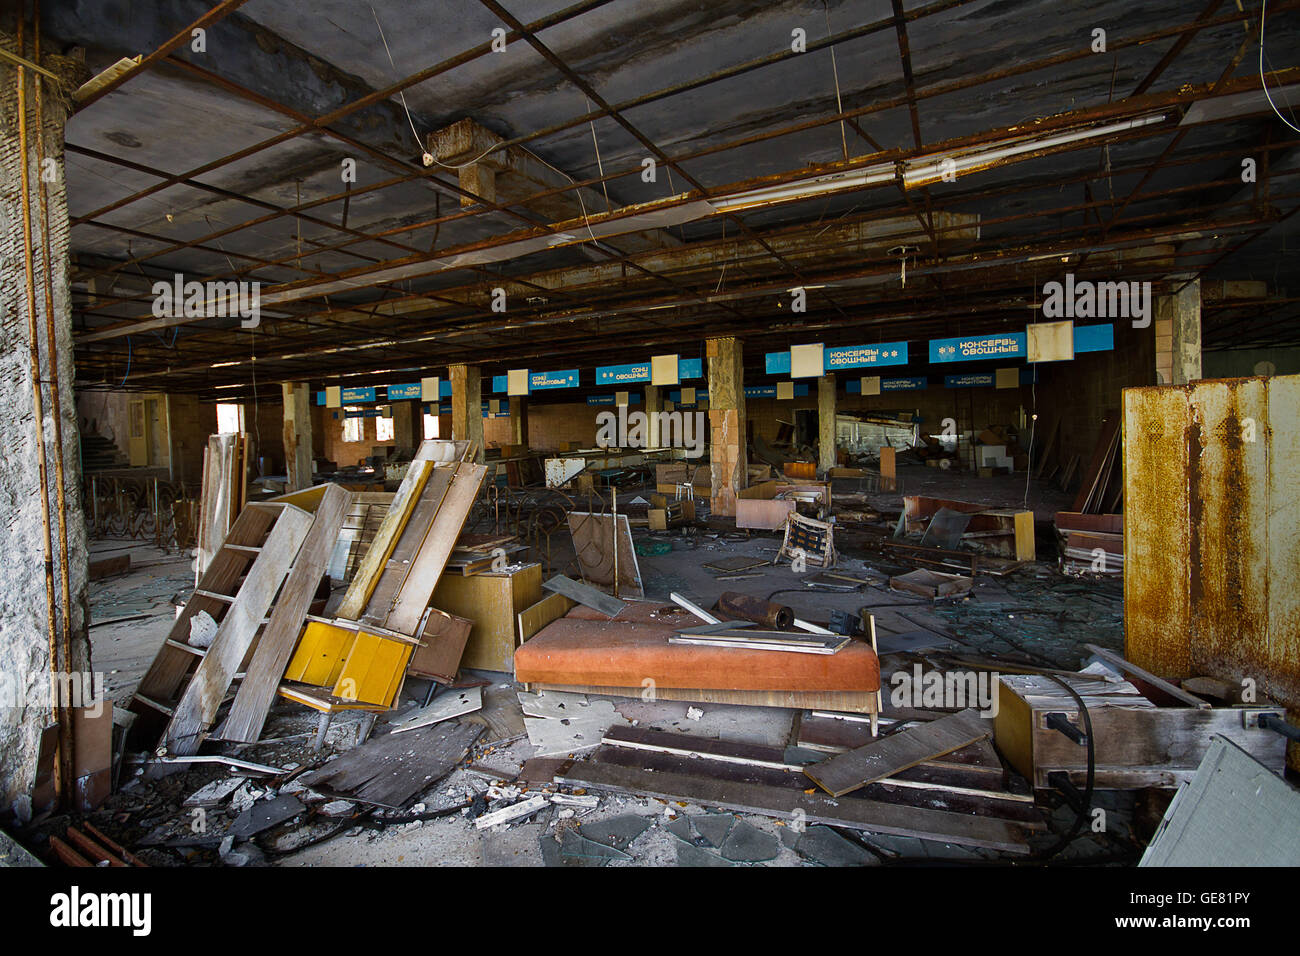 Pripyat supermarket. The abandoned town of Pripyat in the Chernobyl exclusion zone, Ukraine. - Stock Image